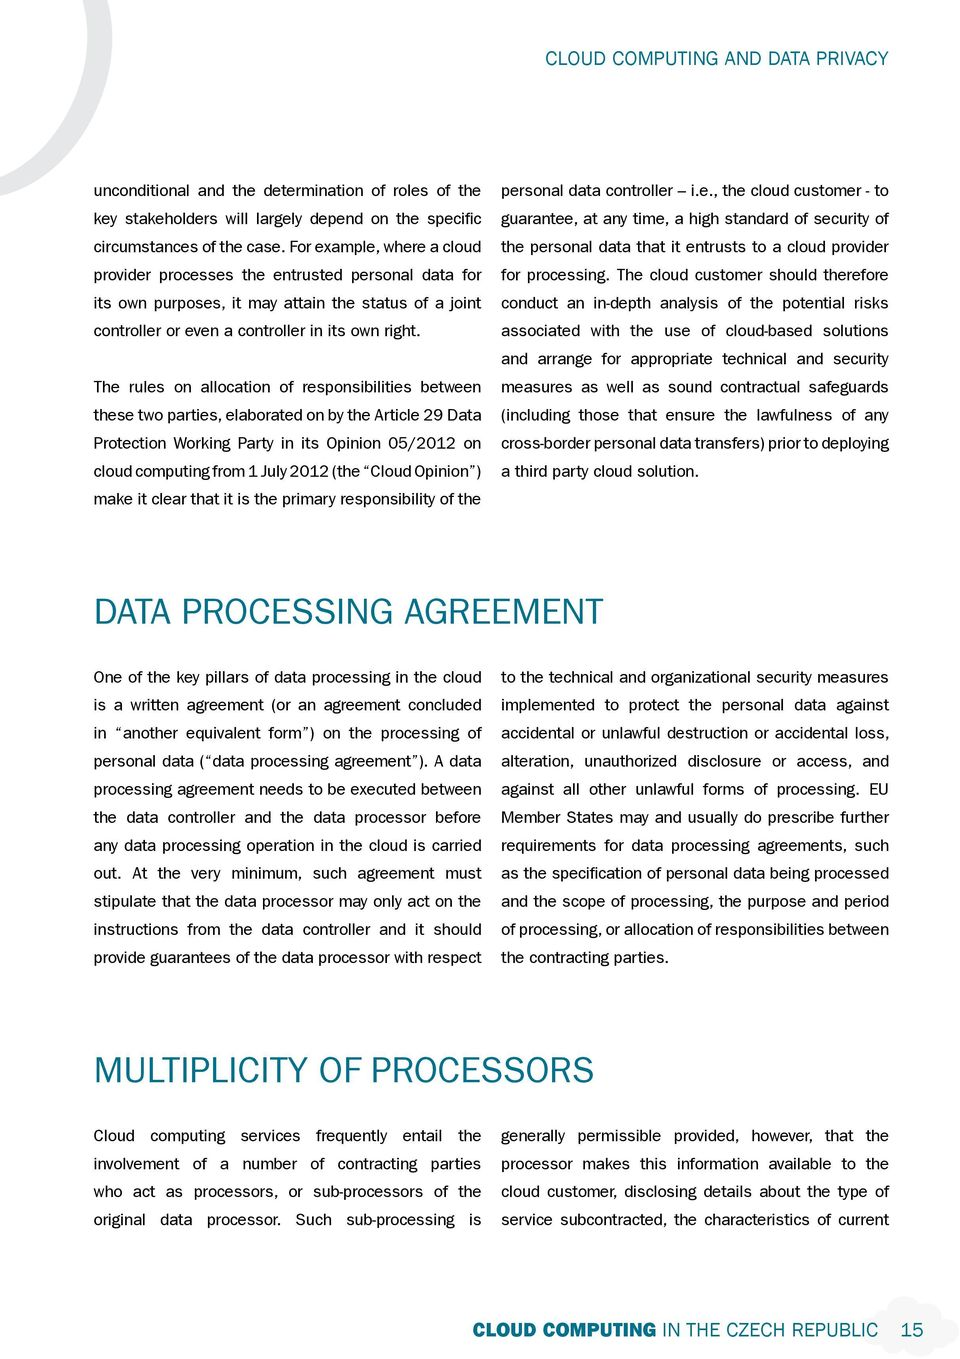 The rules on allocation of responsibilities between these two parties, elaborated on by the Article 29 Data Protection Working Party in its Opinion 05/2012 on cloud computing from 1 July 2012 (the